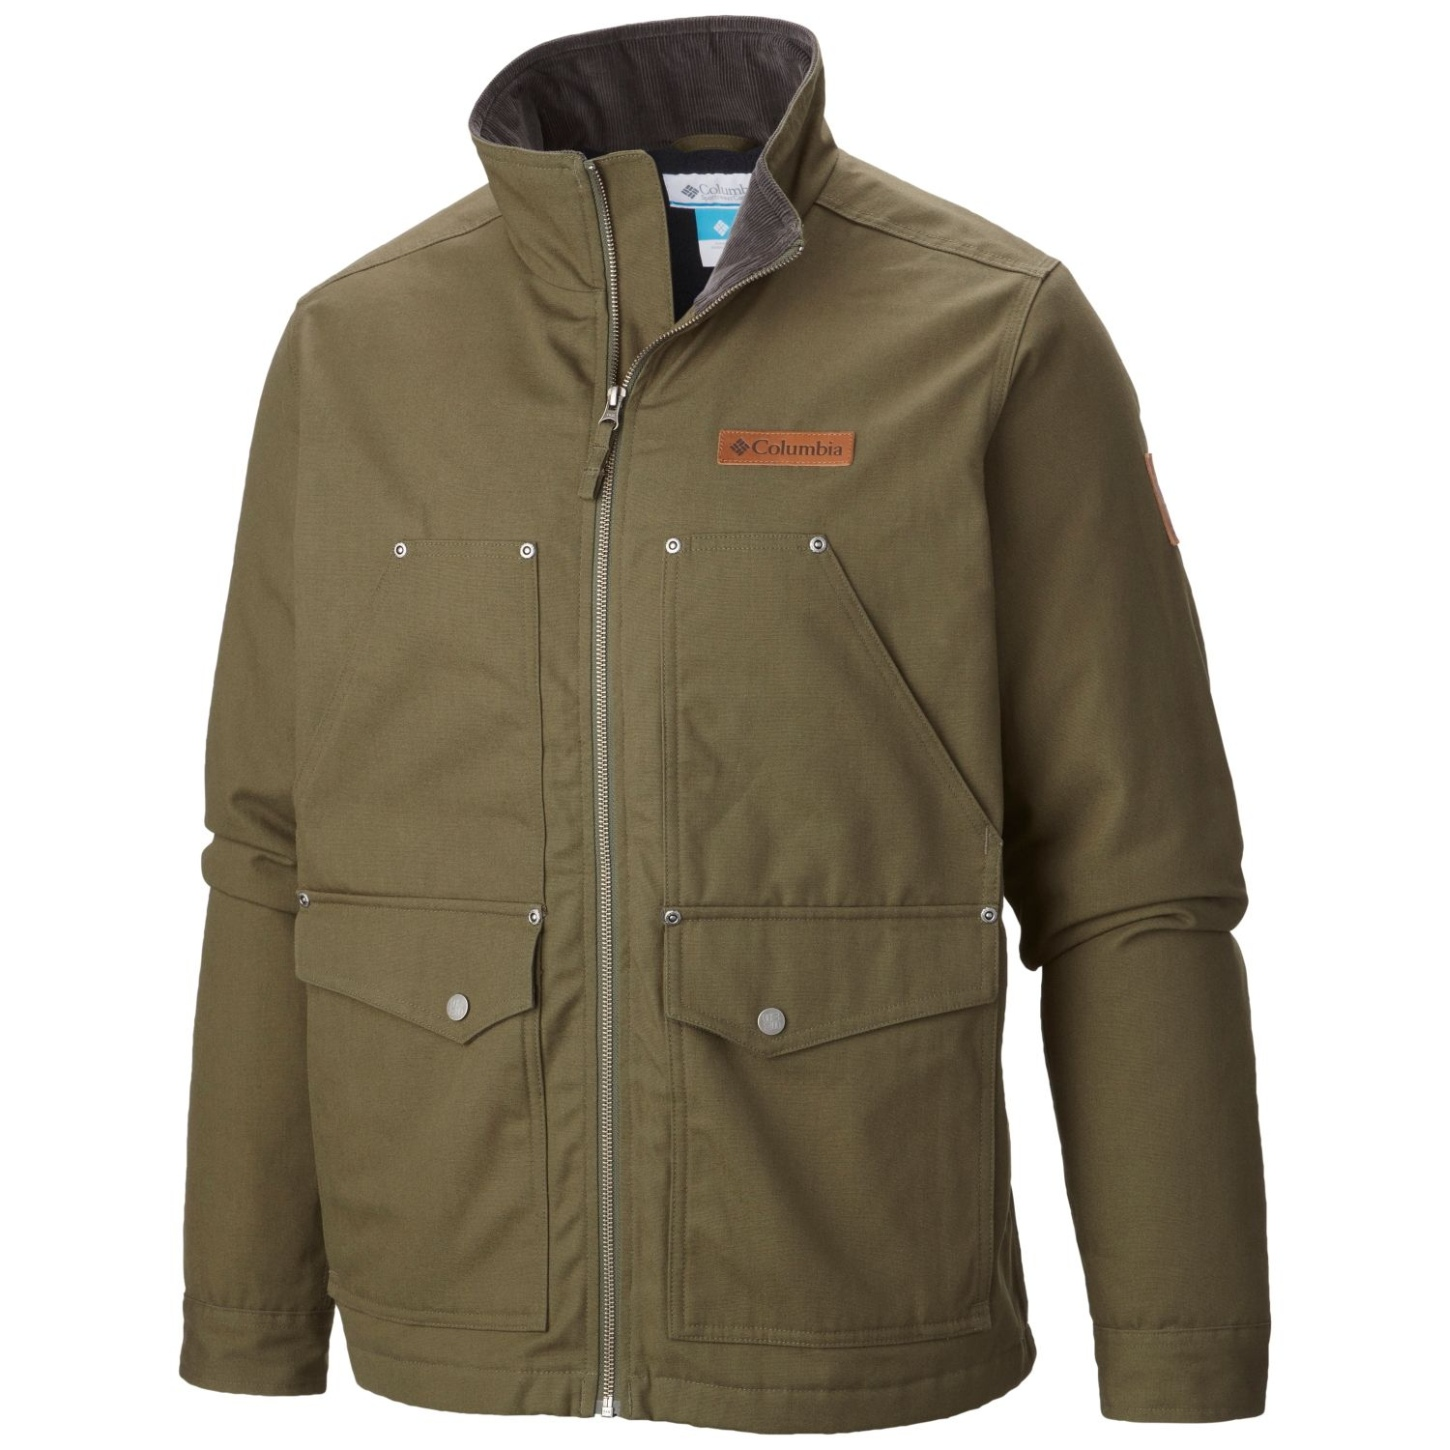 Columbia Men's Loma Vista Jacket Peatmoss-30